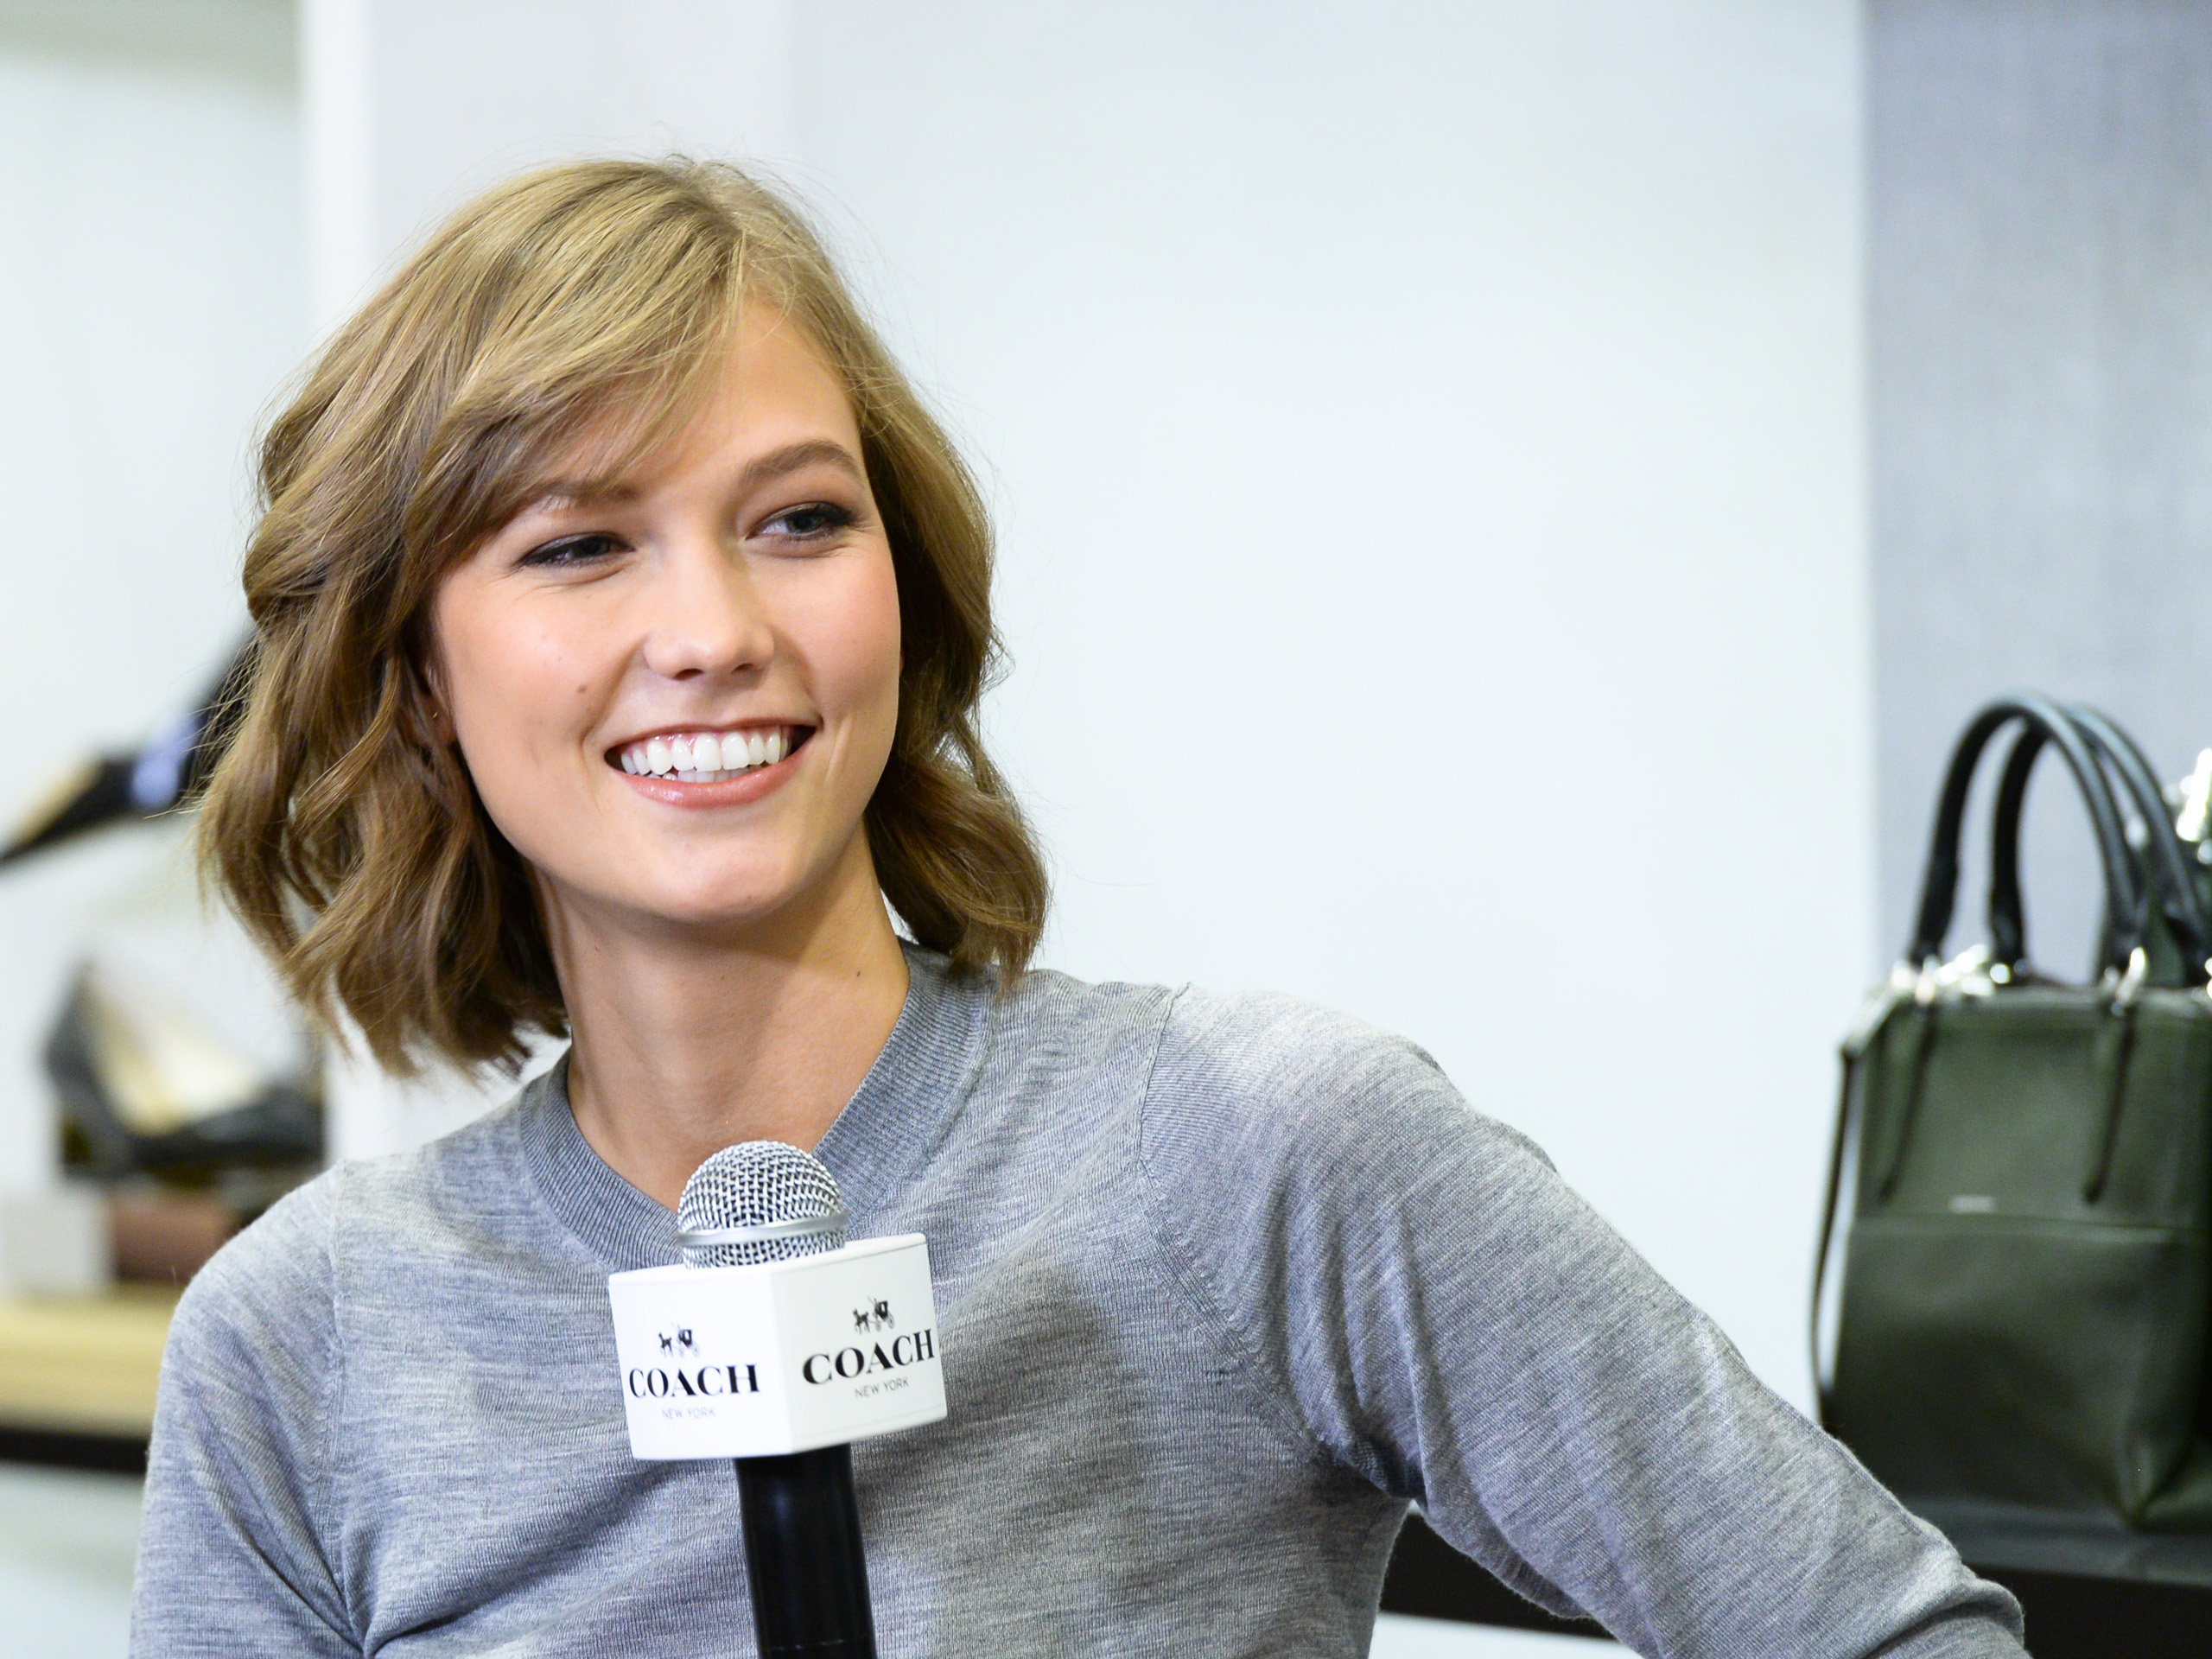 All Karlie Kloss Wallpapers